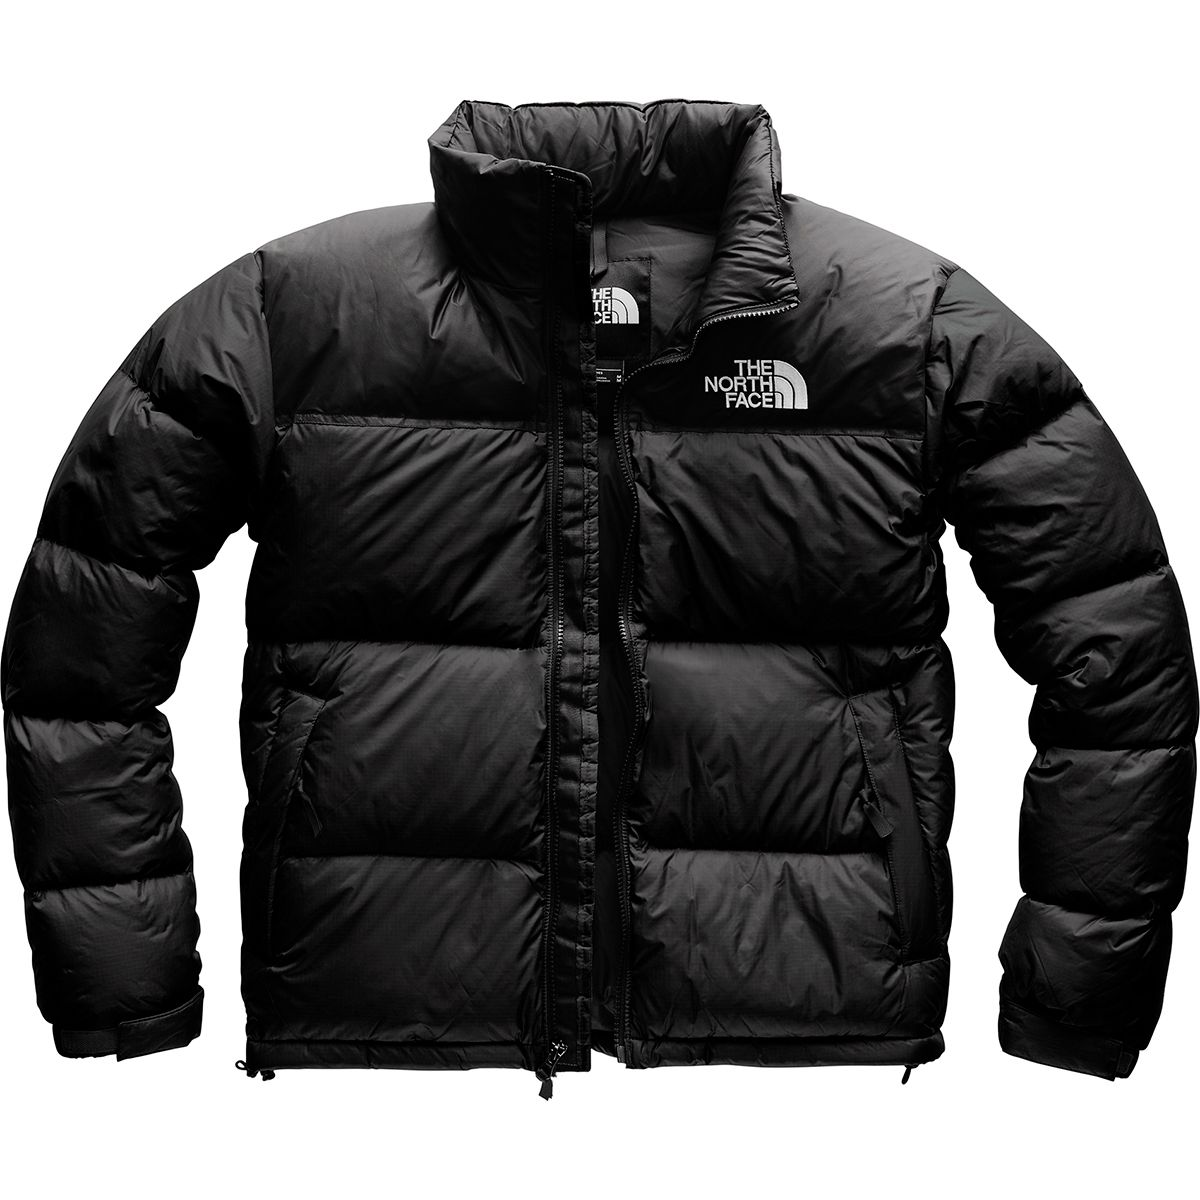 Fabriksnye The North Face Nuptse Jacket Reviews - Trailspace AR-56